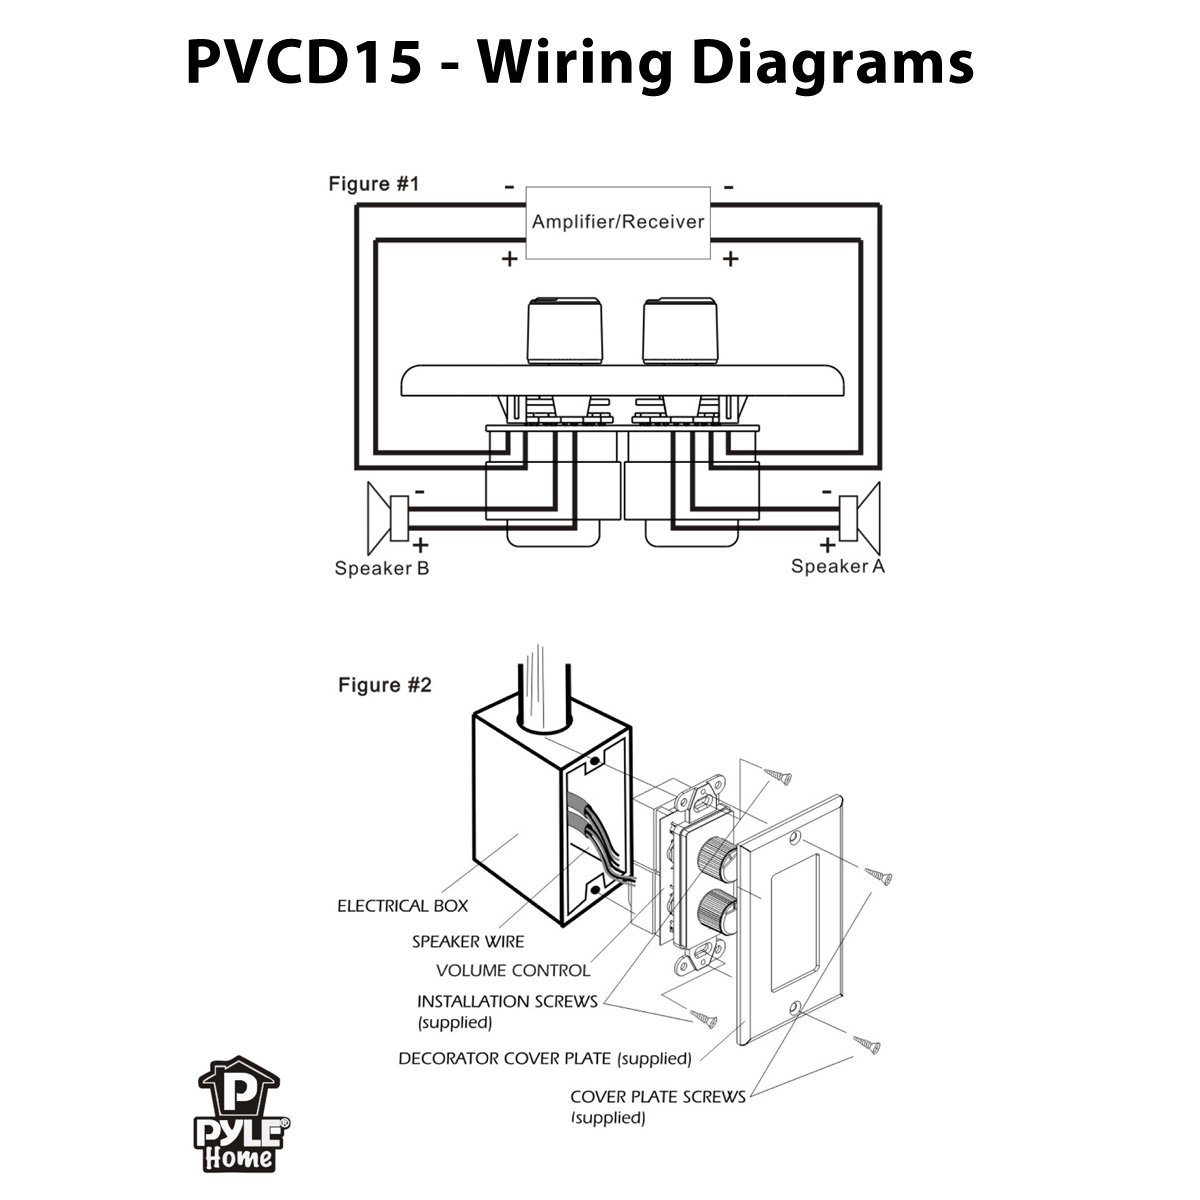 pyle home amp wiring diagram schematics wiring diagrams u2022 rh seniorlivinguniversity co